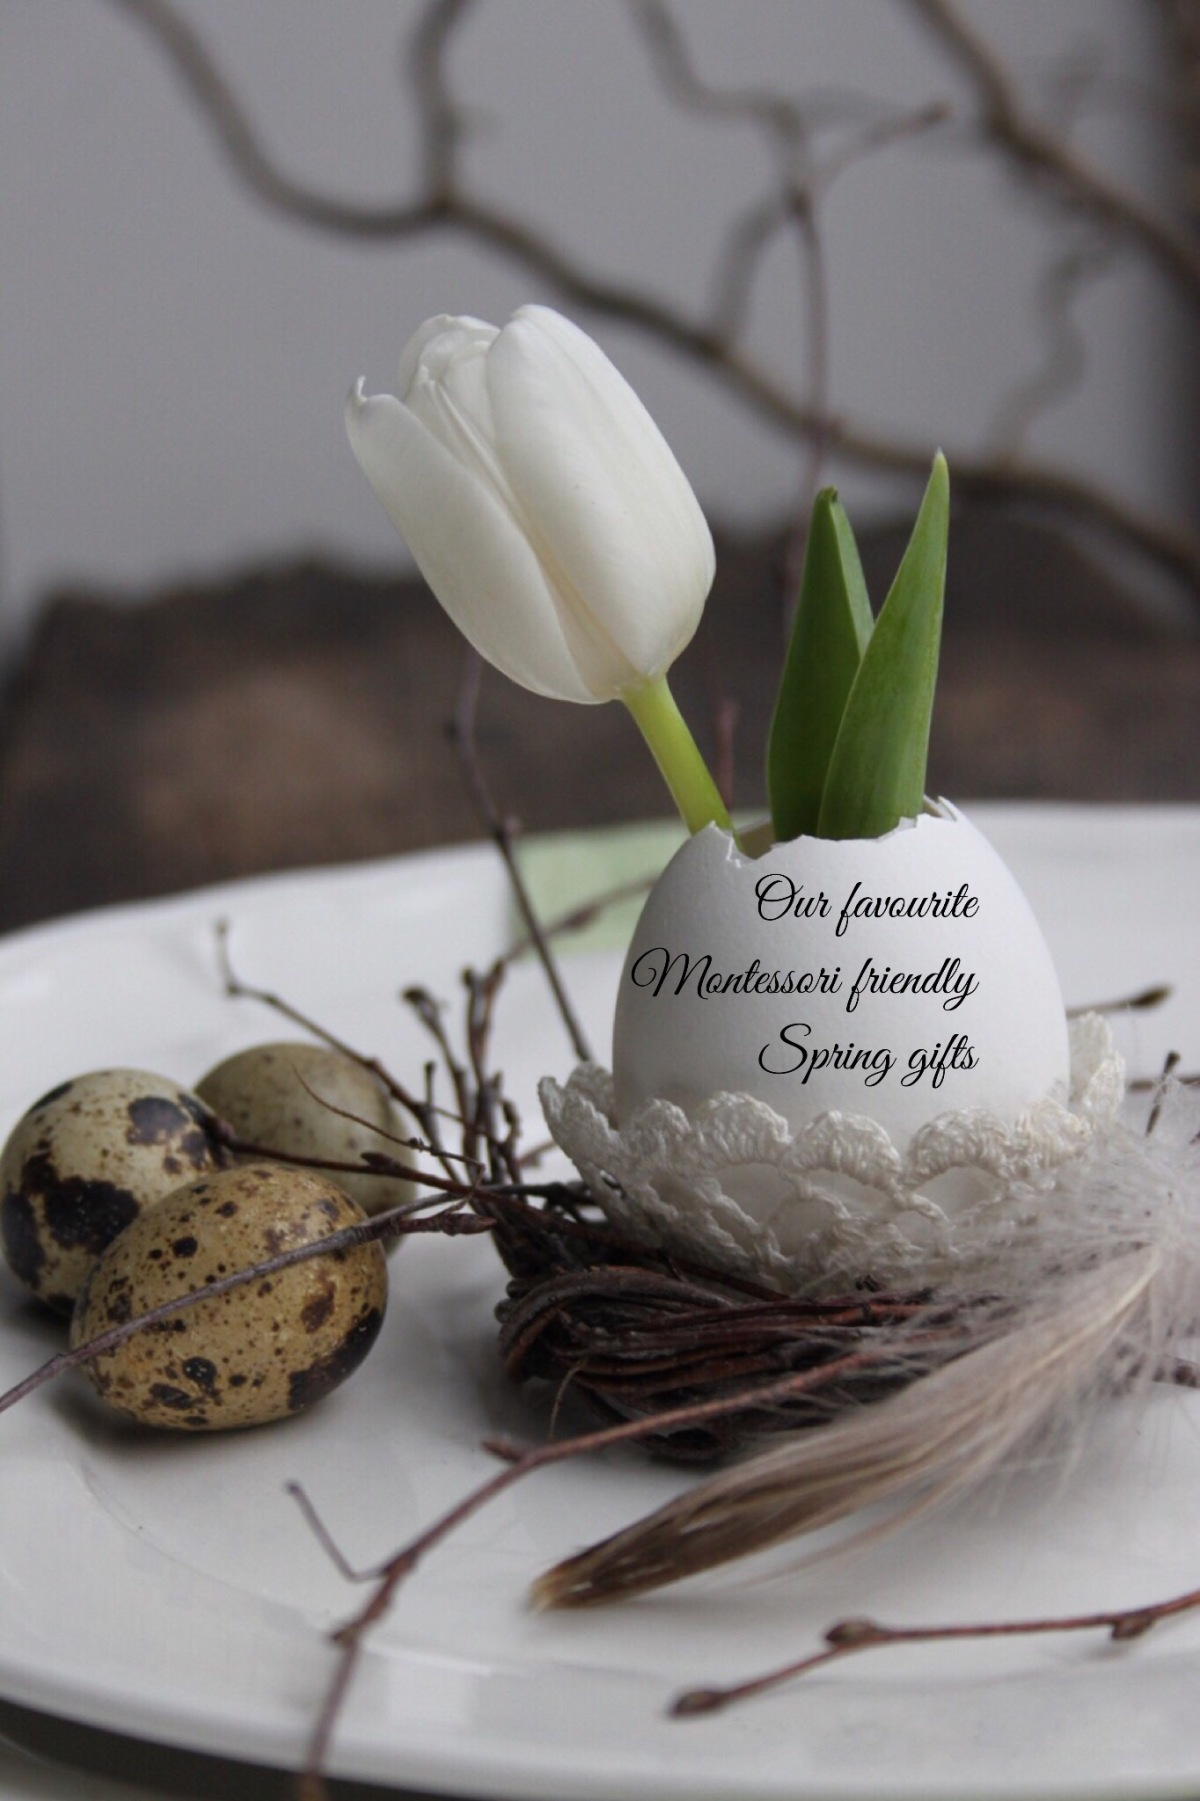 Our favourite Montessori friendly Spring gifts